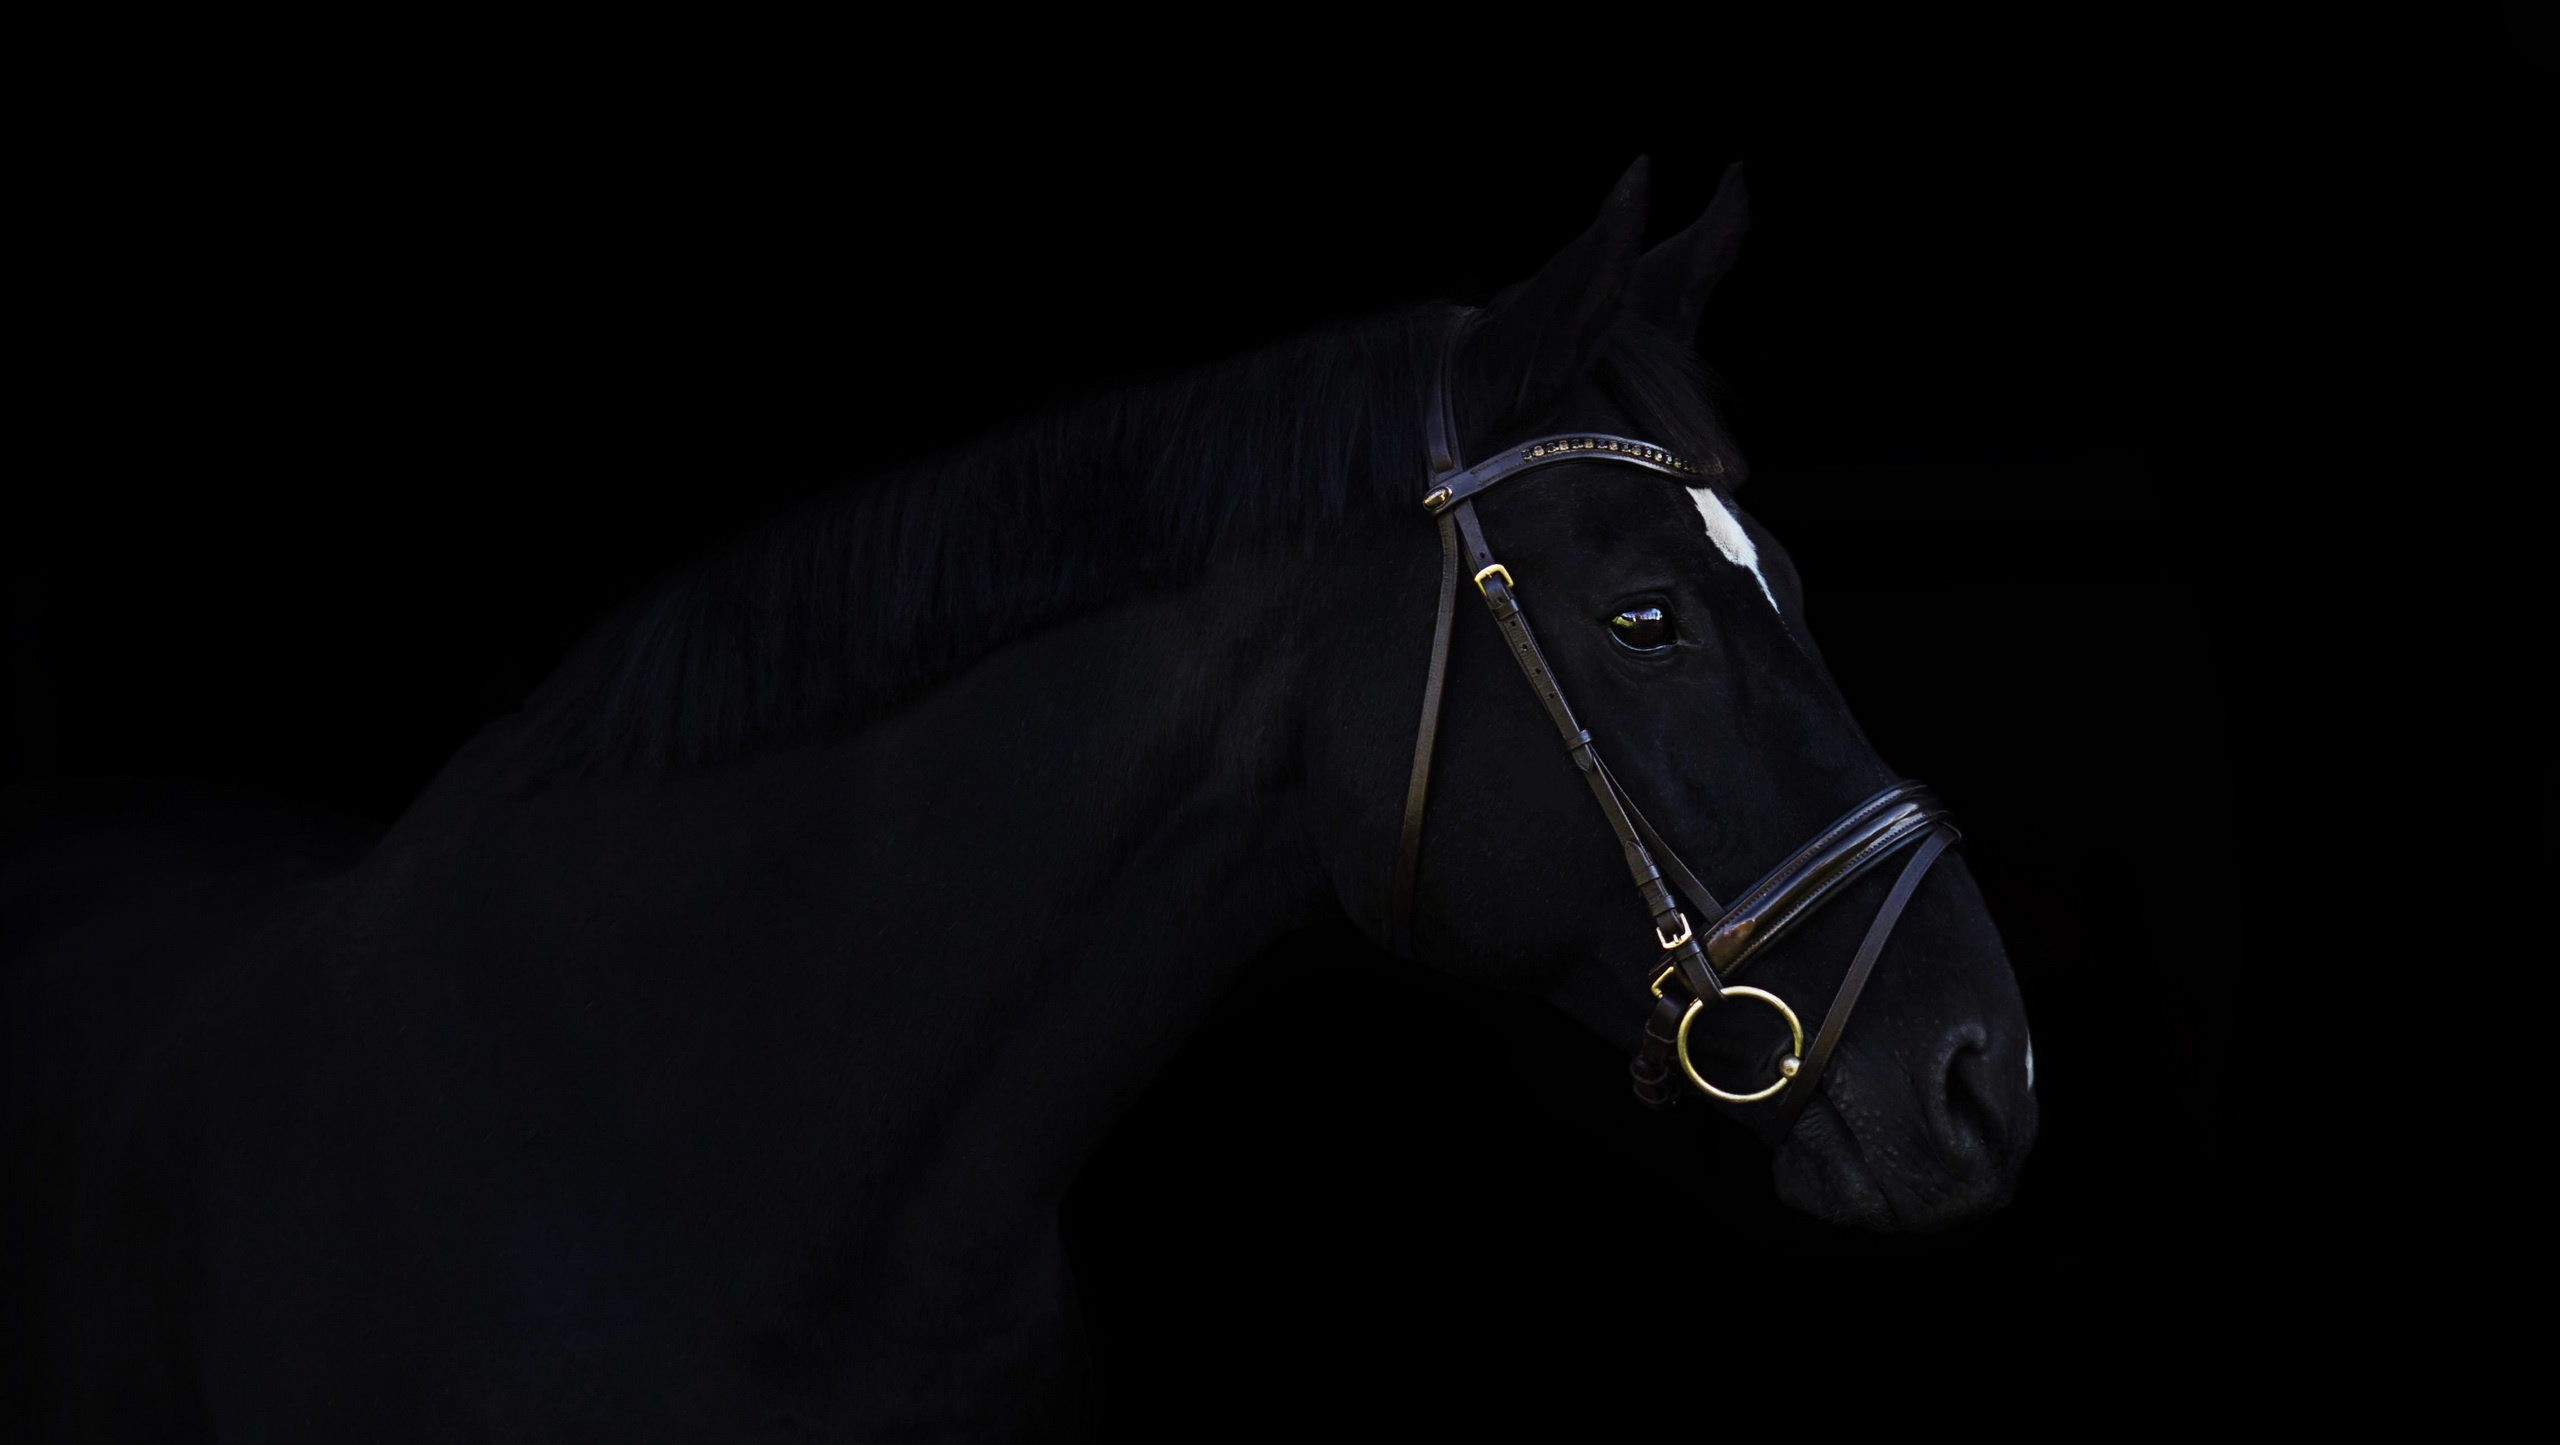 Black Horse Wallpaper Posted By Samantha Peltier